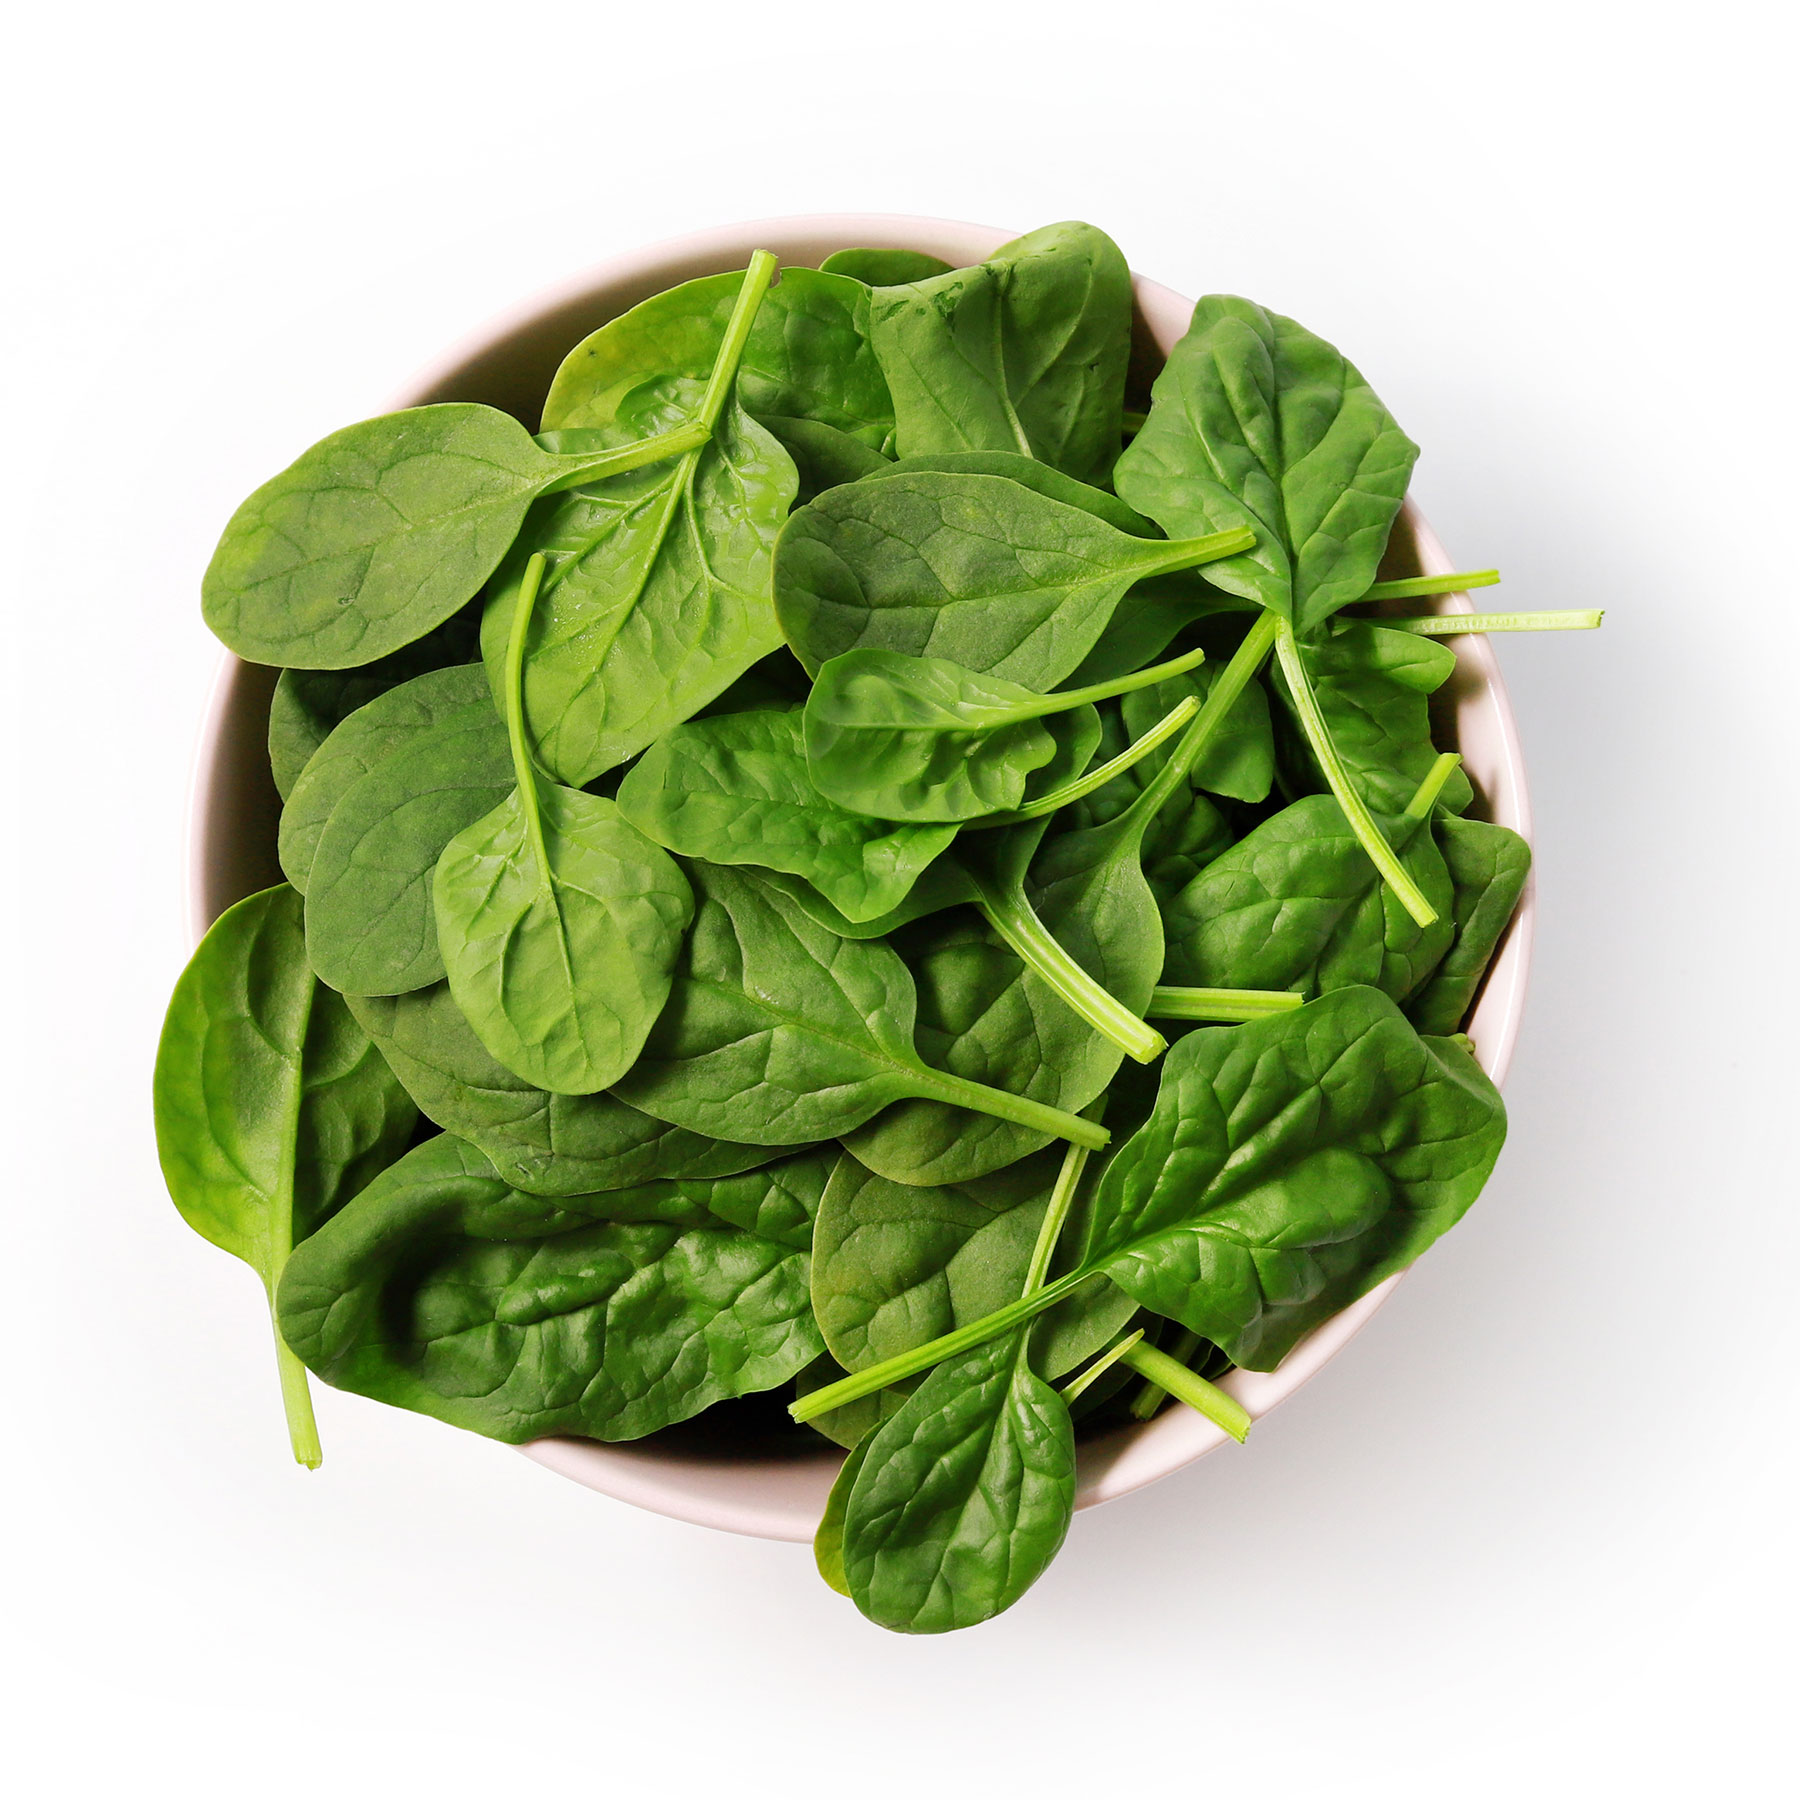 Superfoods to Know About: Spinach